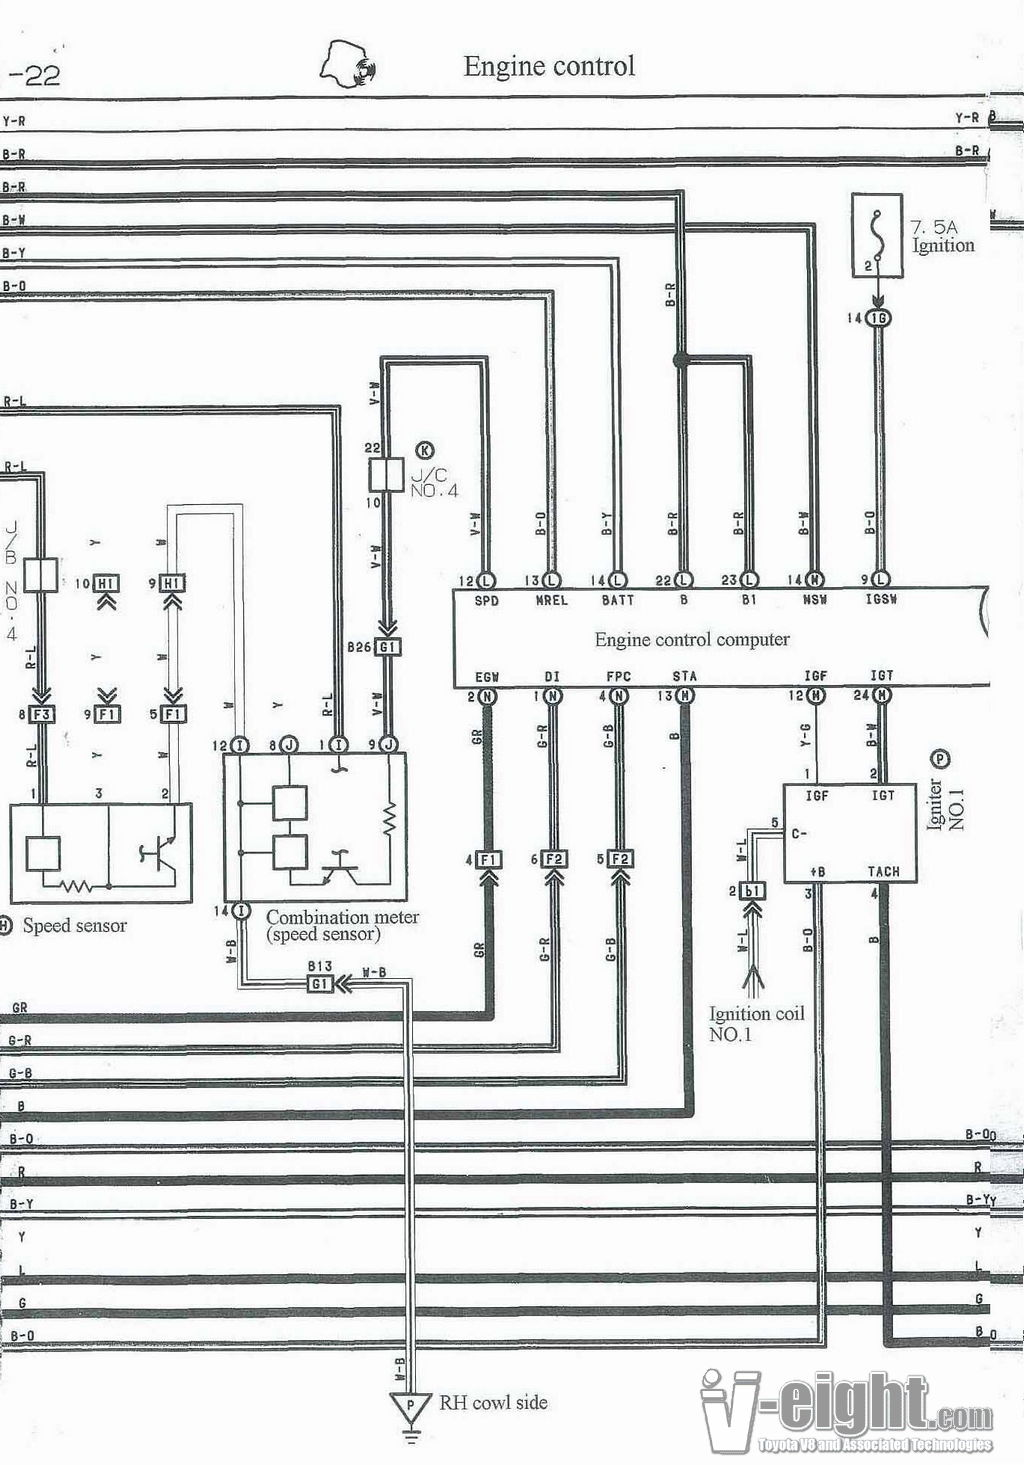 hight resolution of 1uzfe wiring diagram pdf wiring diagrams konsultwrg 1178 1uzfe wiring diagram 1uzfe vvti wiring diagram